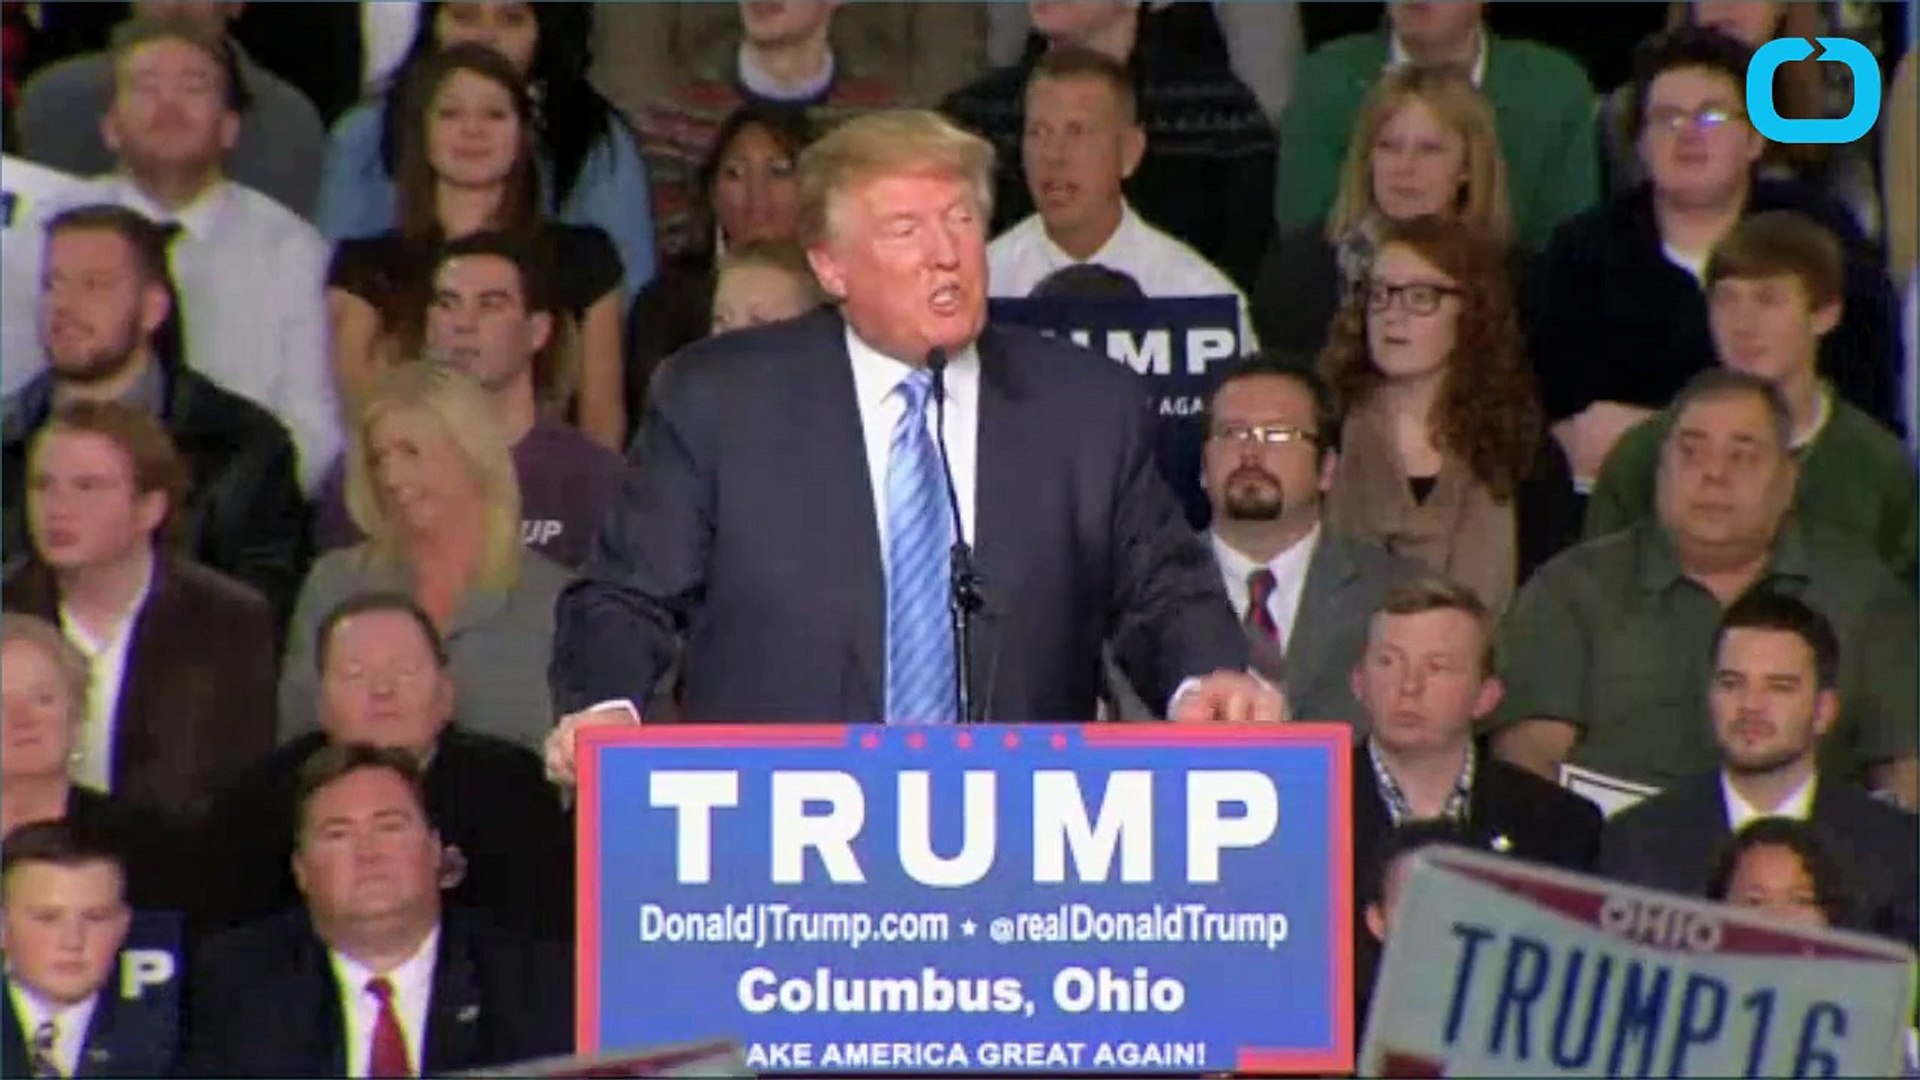 Trump Embraced Conservative Fringe After Muslims Cheered 9/11